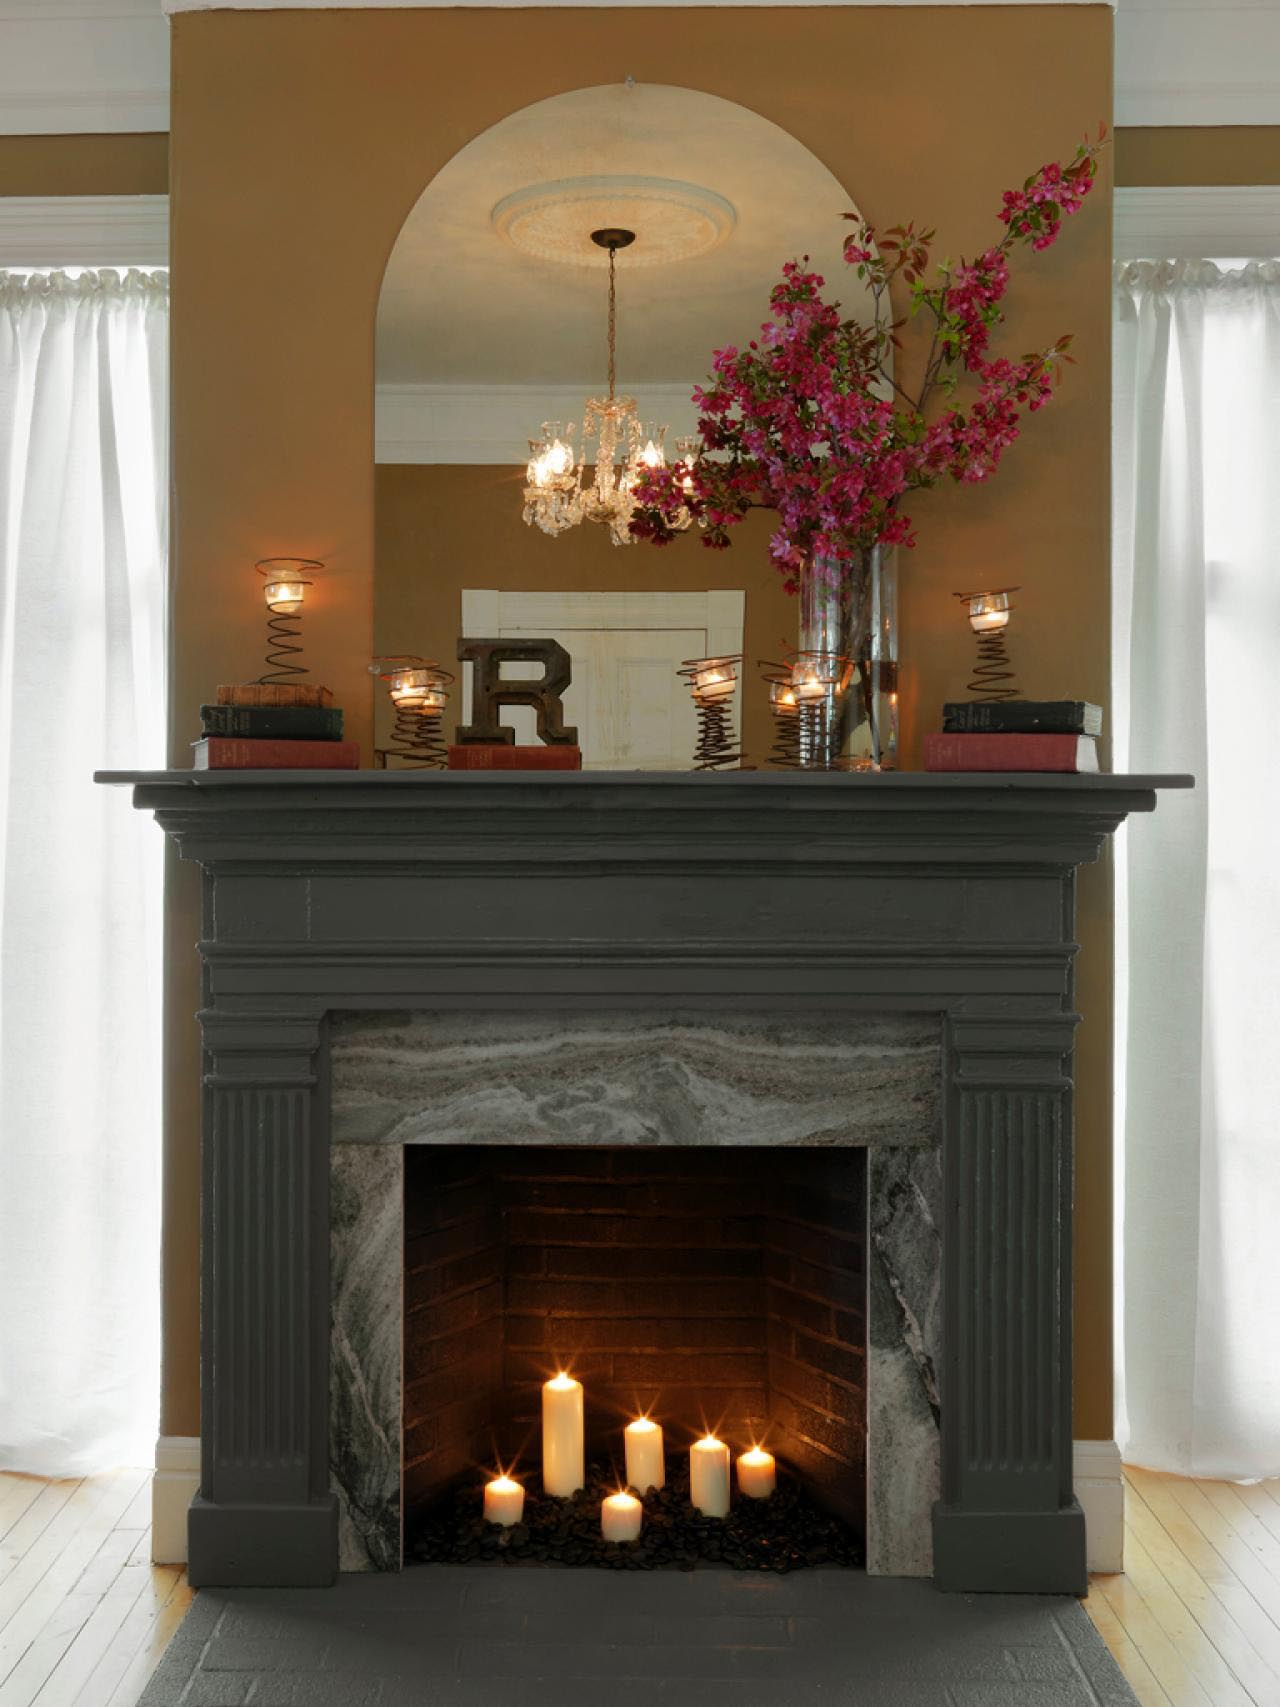 DIY Fireplace Mantel And Surround